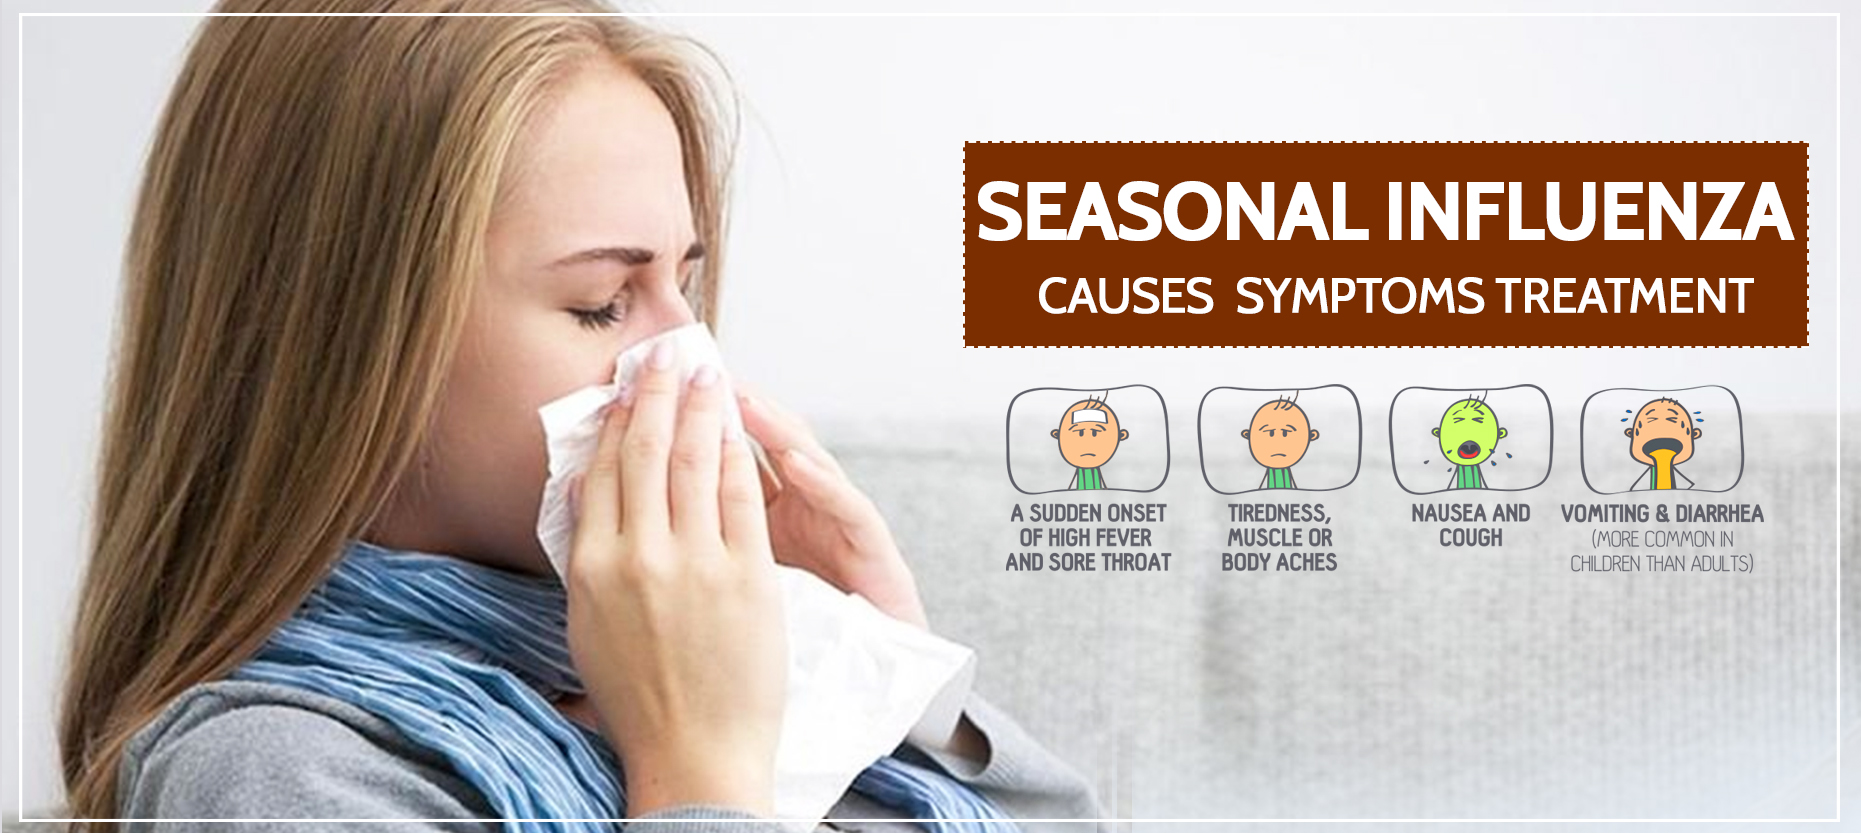 Seasonal Influenza: Causes, Symptoms, and Treatment